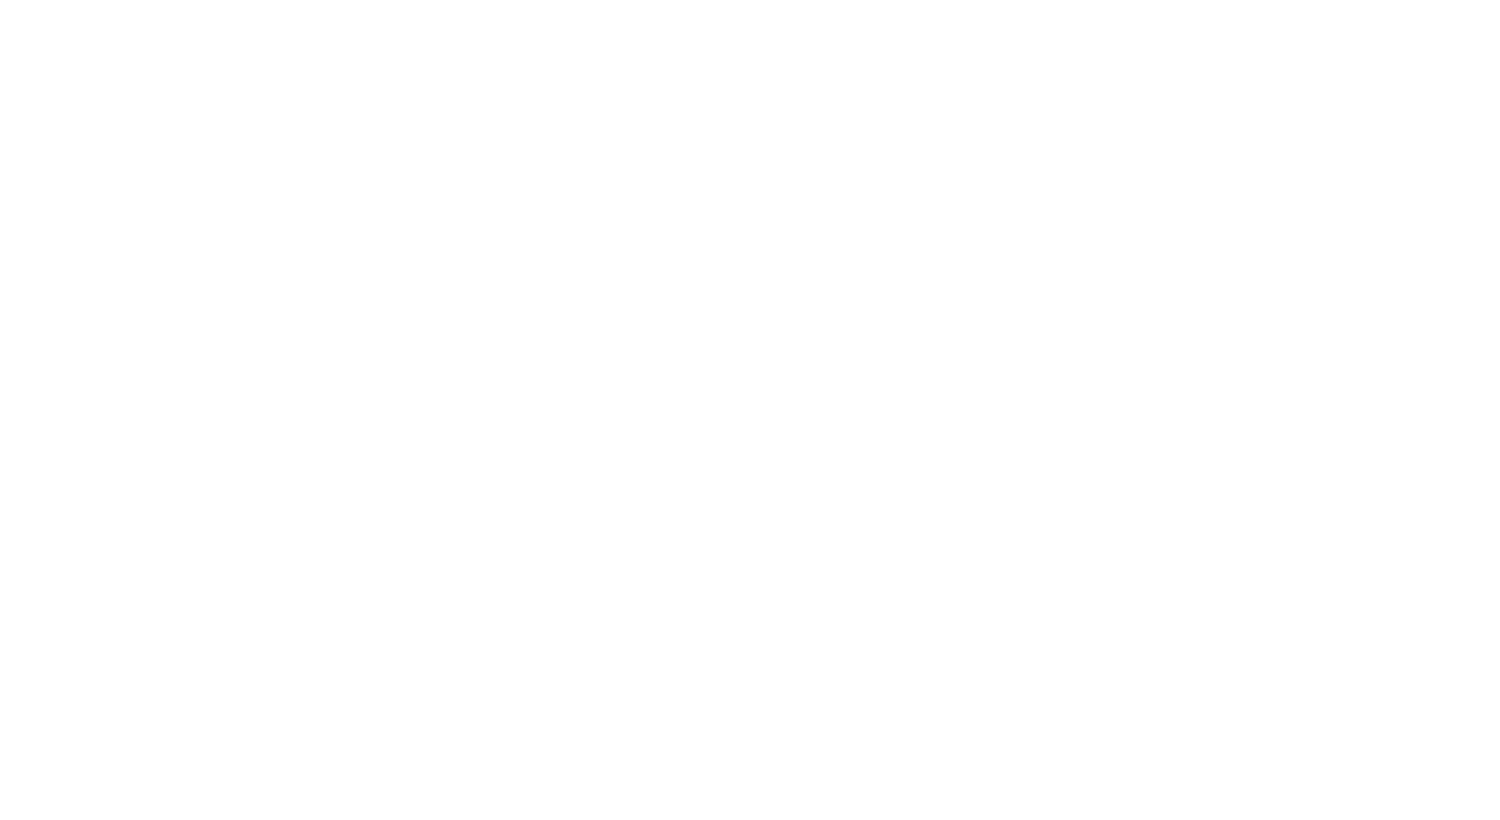 Vinodha Joly, LMFT - Psychotherapy and Counseling Services